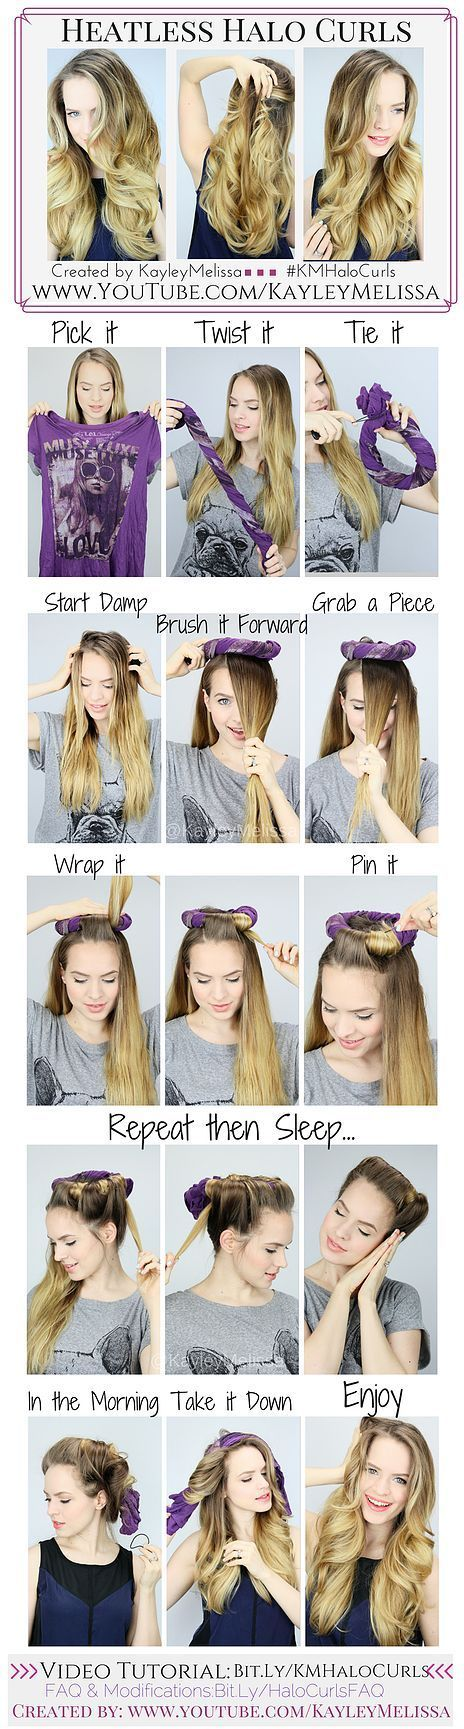 Heatless Halo Curls Hair Tutorial Pictures, Photos, and Images for Facebook, Tumblr, Pinterest, and Twitter